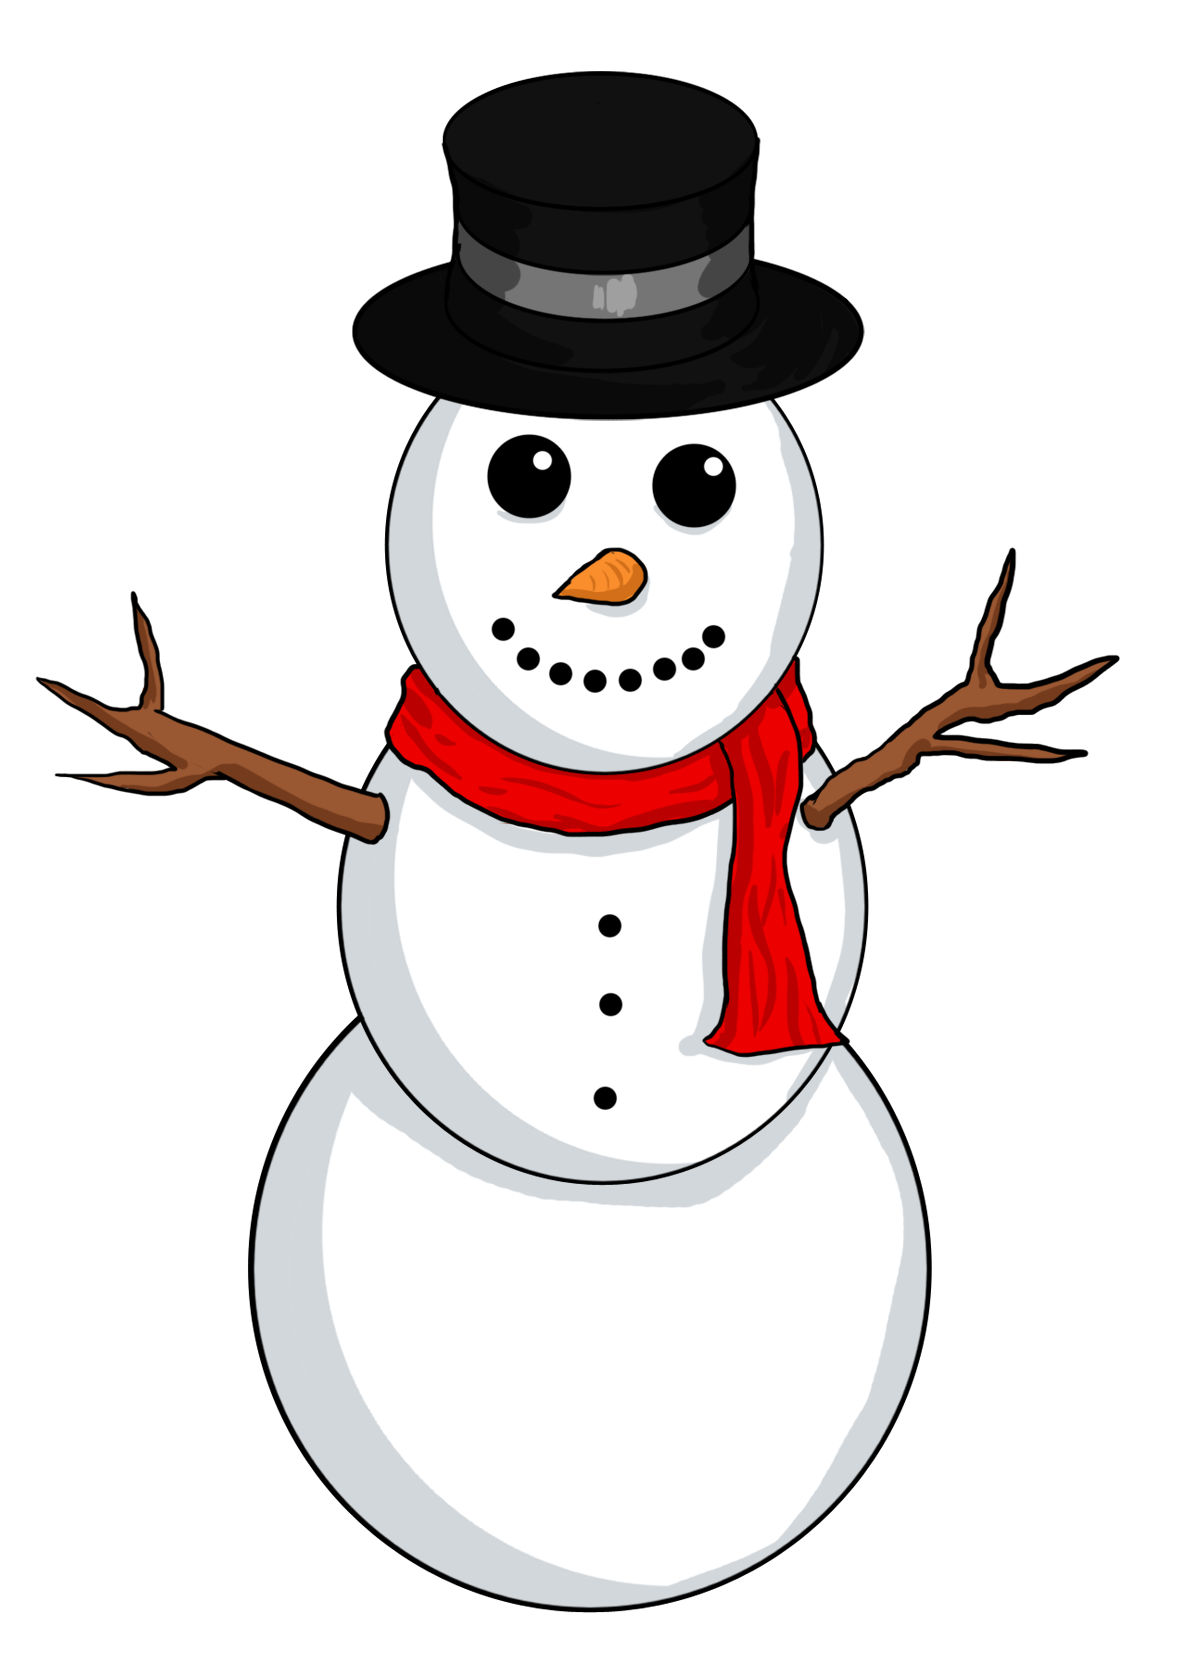 Snowman free clipart suggest